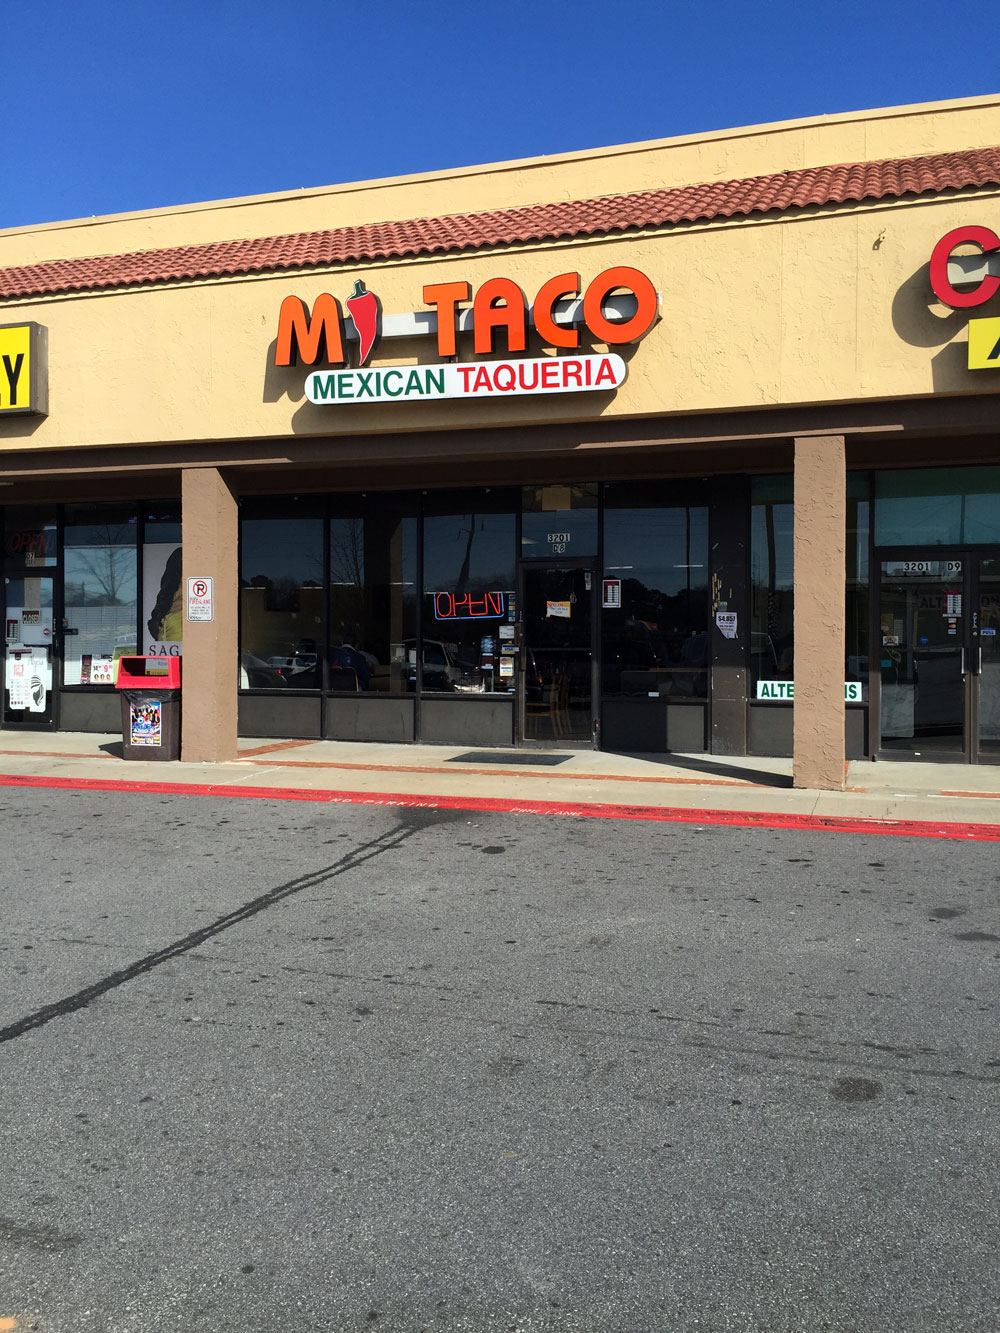 independent restaurant review mi taco pleasantdale rd atlanta of a super walmart parking is in the fairly large lot out front behind a standing bojangles near the corner of tucker norcross and britt roads